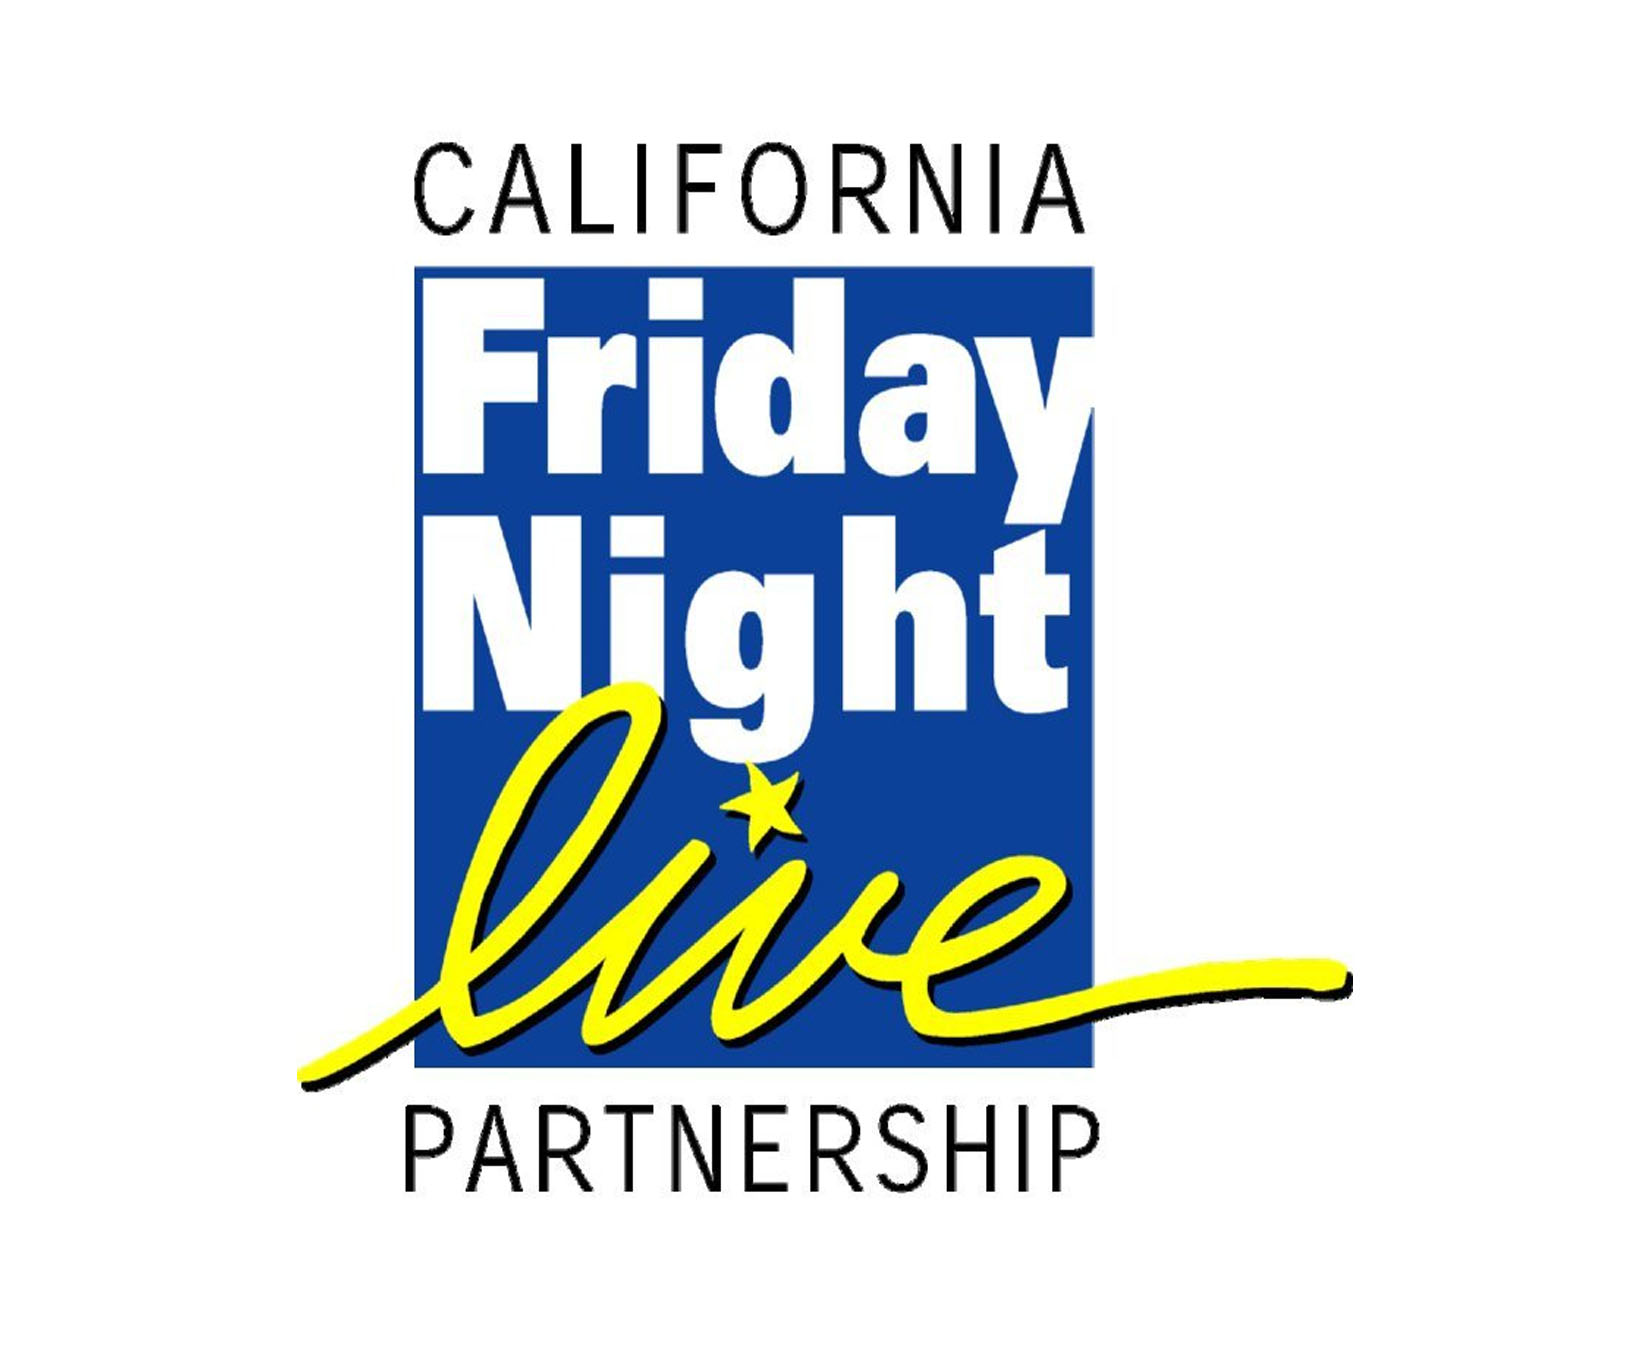 California Friday Night Live Partnership Logo